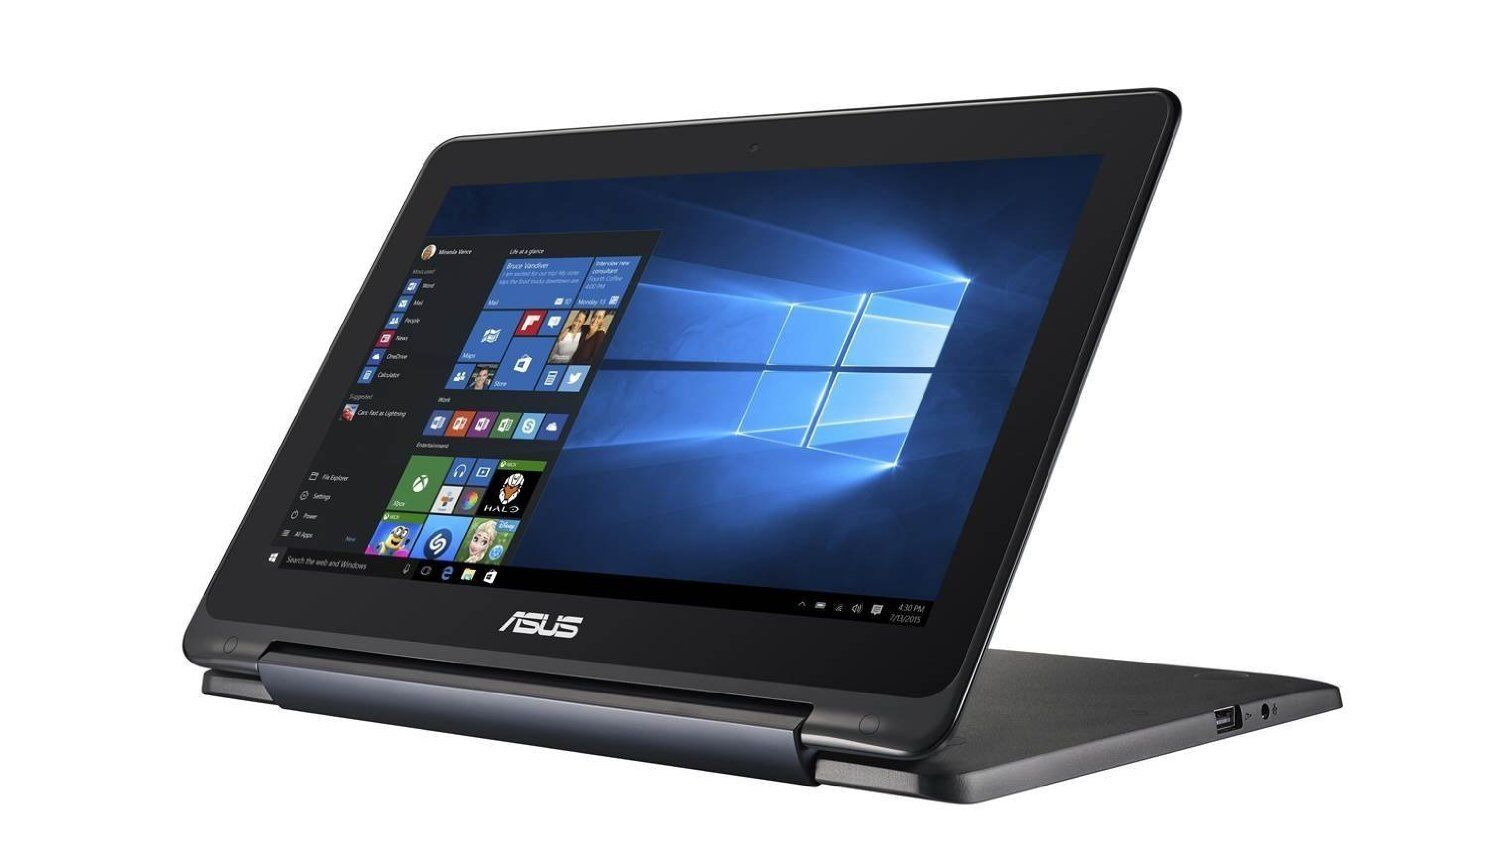 Asus P2 from eBay